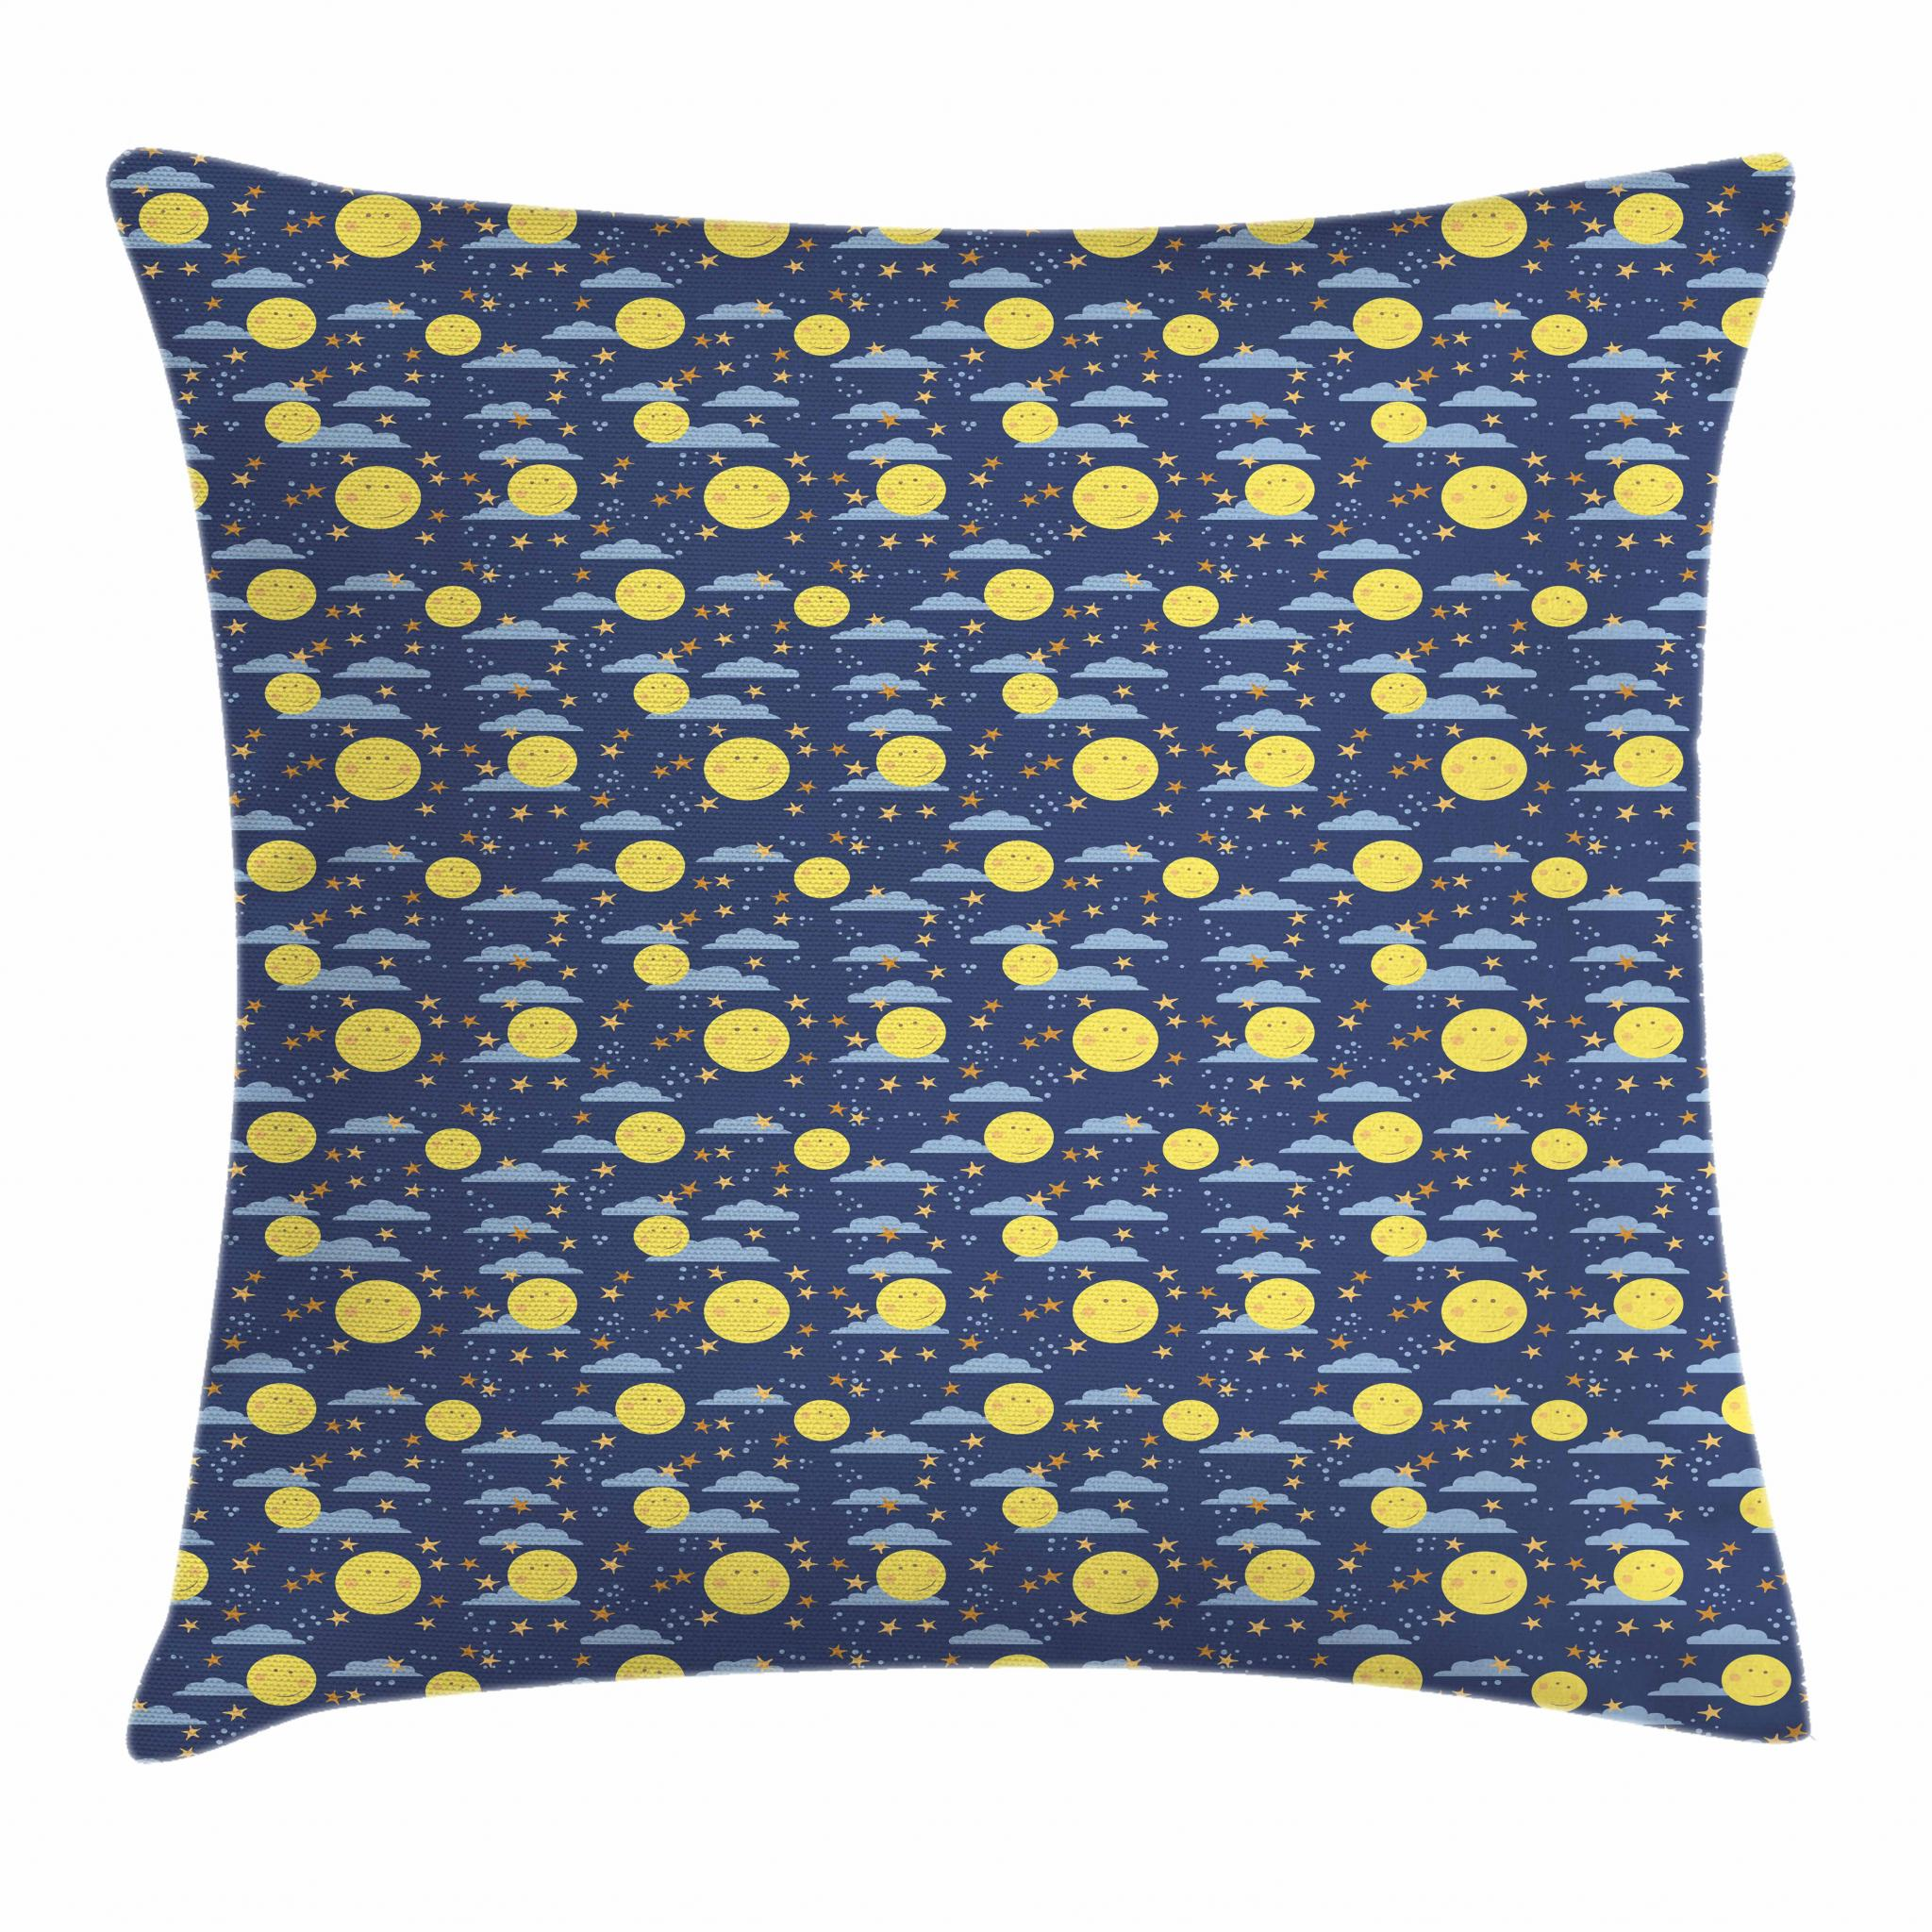 Kids Throw Pillow Cushion Cover Smiling Full Moon Faces